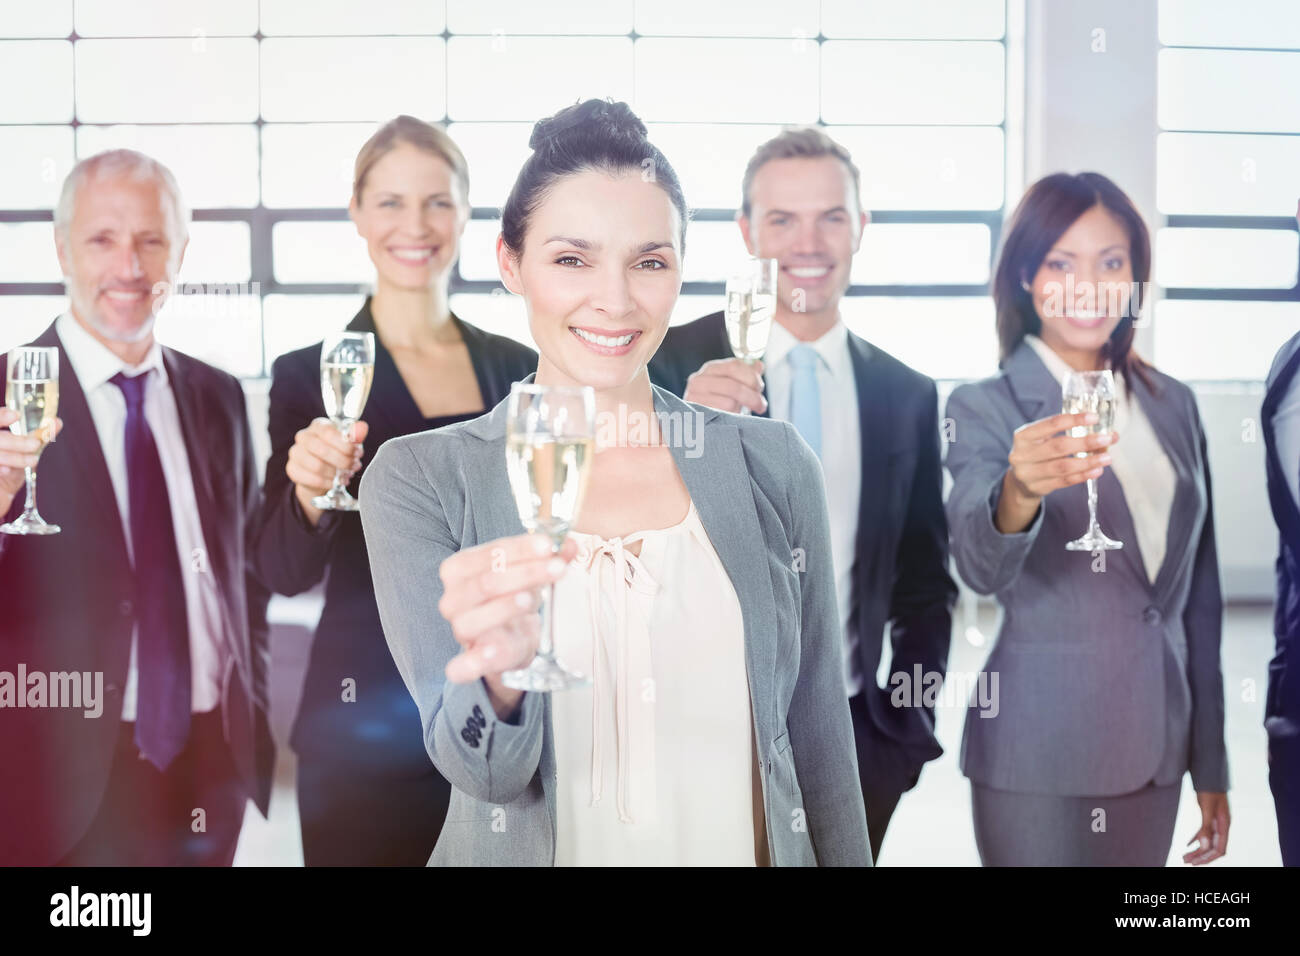 Portrait of business team holding champagne flute - Stock Image